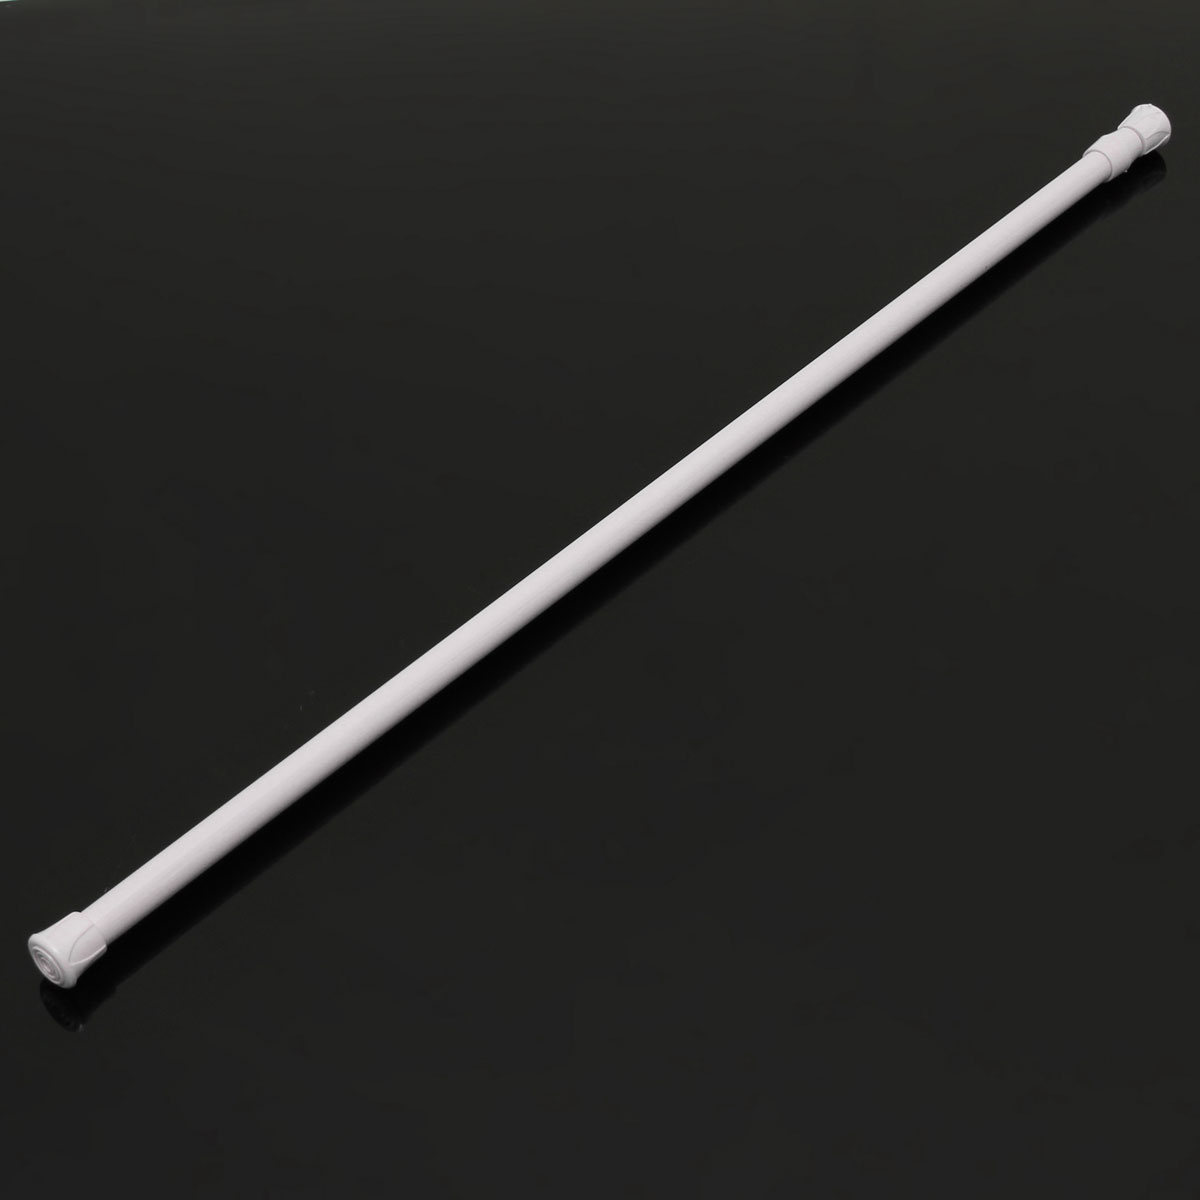 60 110cm Extendable Adjustable Spring Tension Curtain Rod